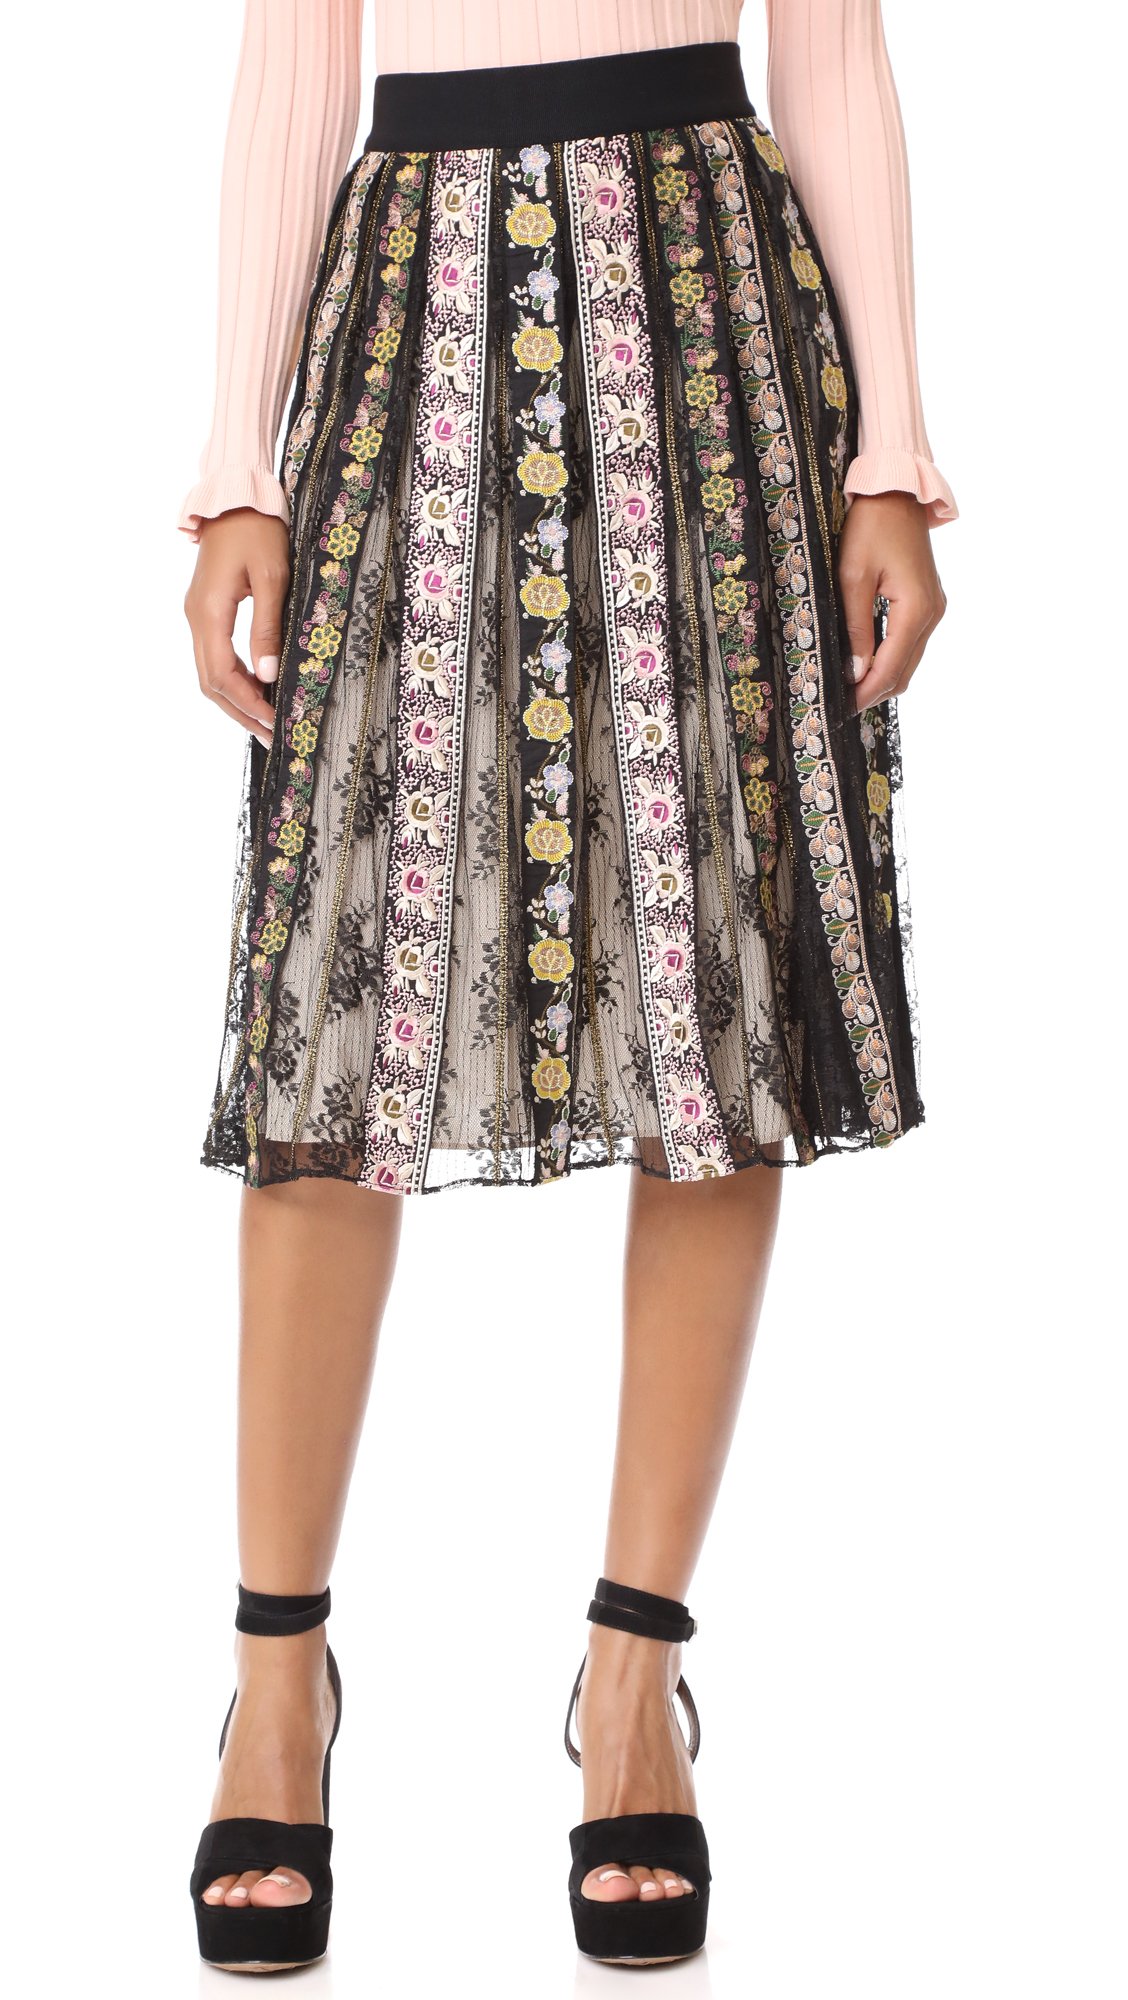 alice + olivia Birdie Embroidered Skirt - Black/Multi